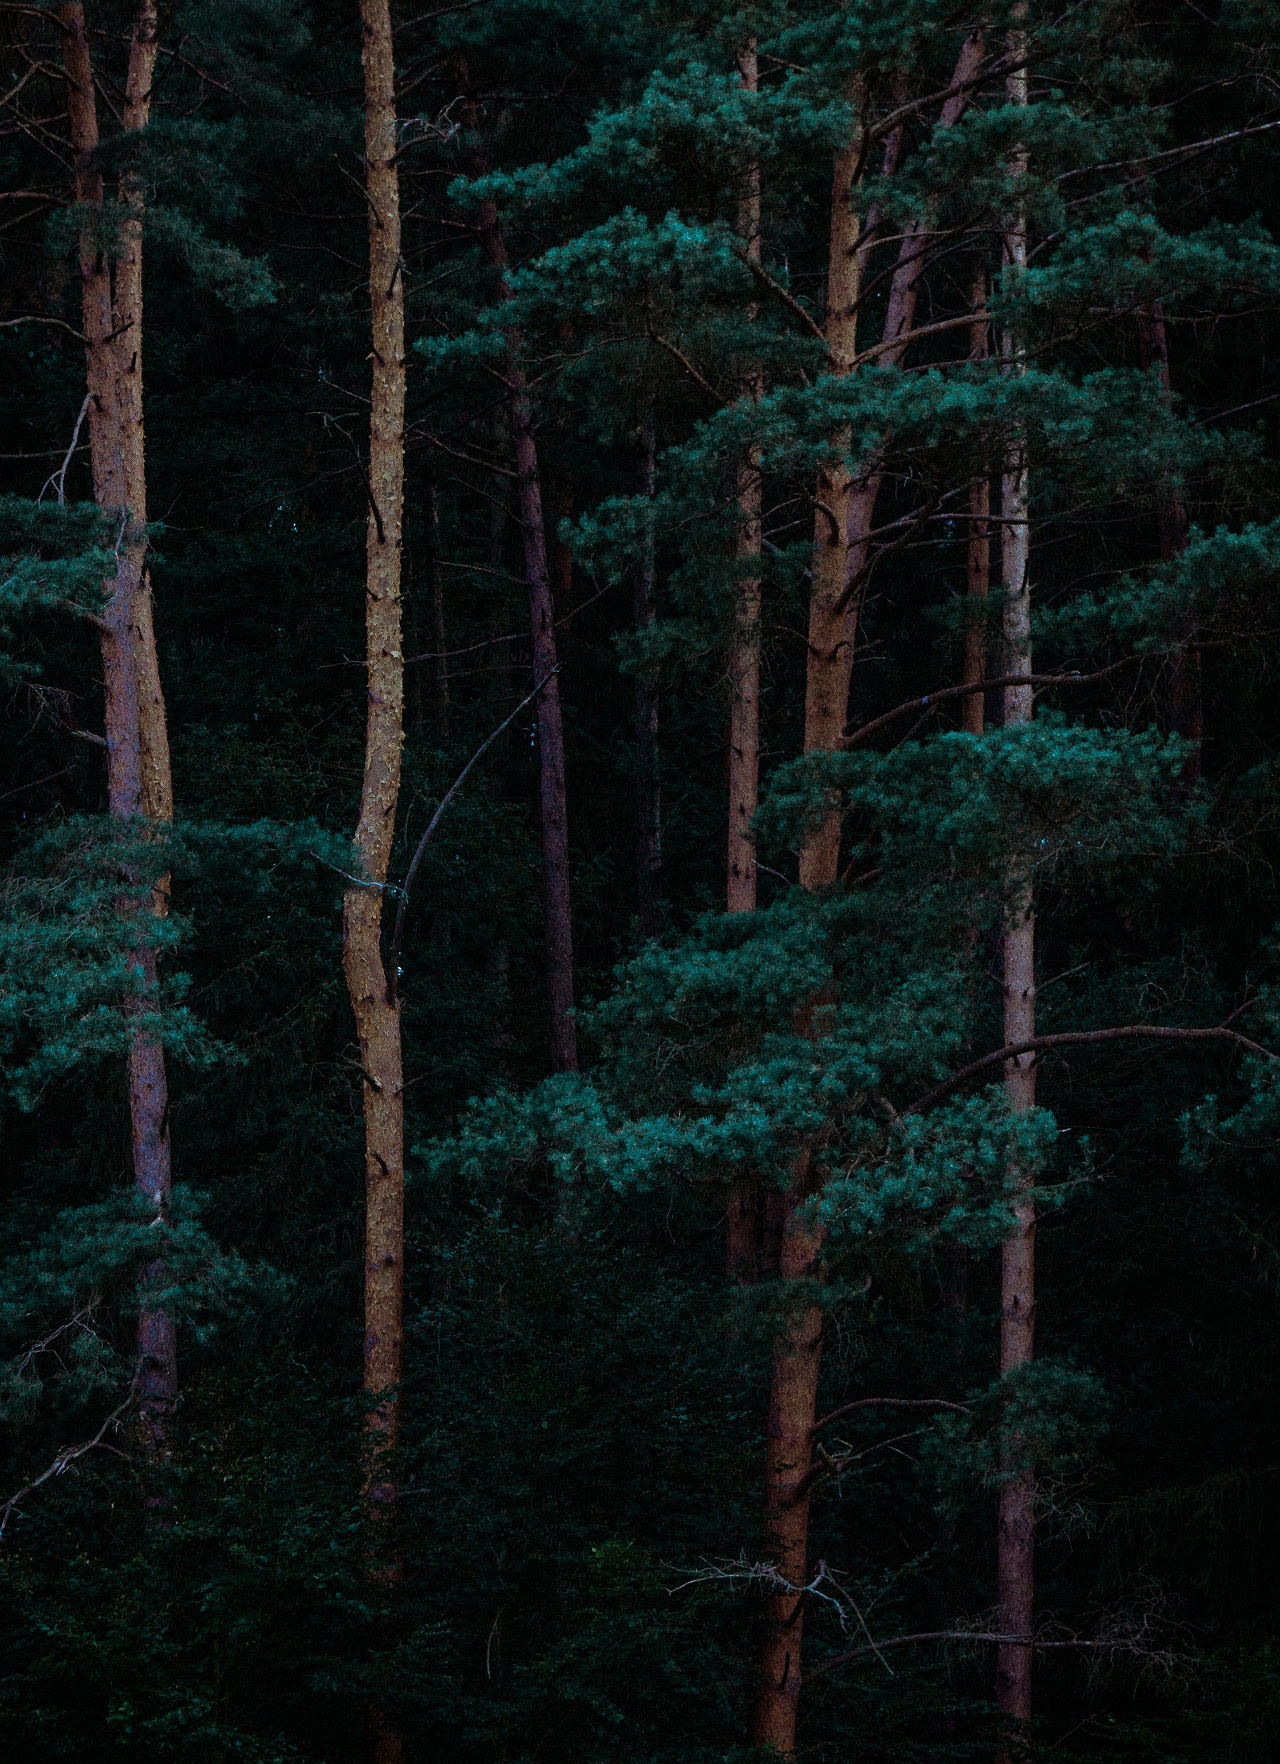 Trees in a dark West Coast forest.